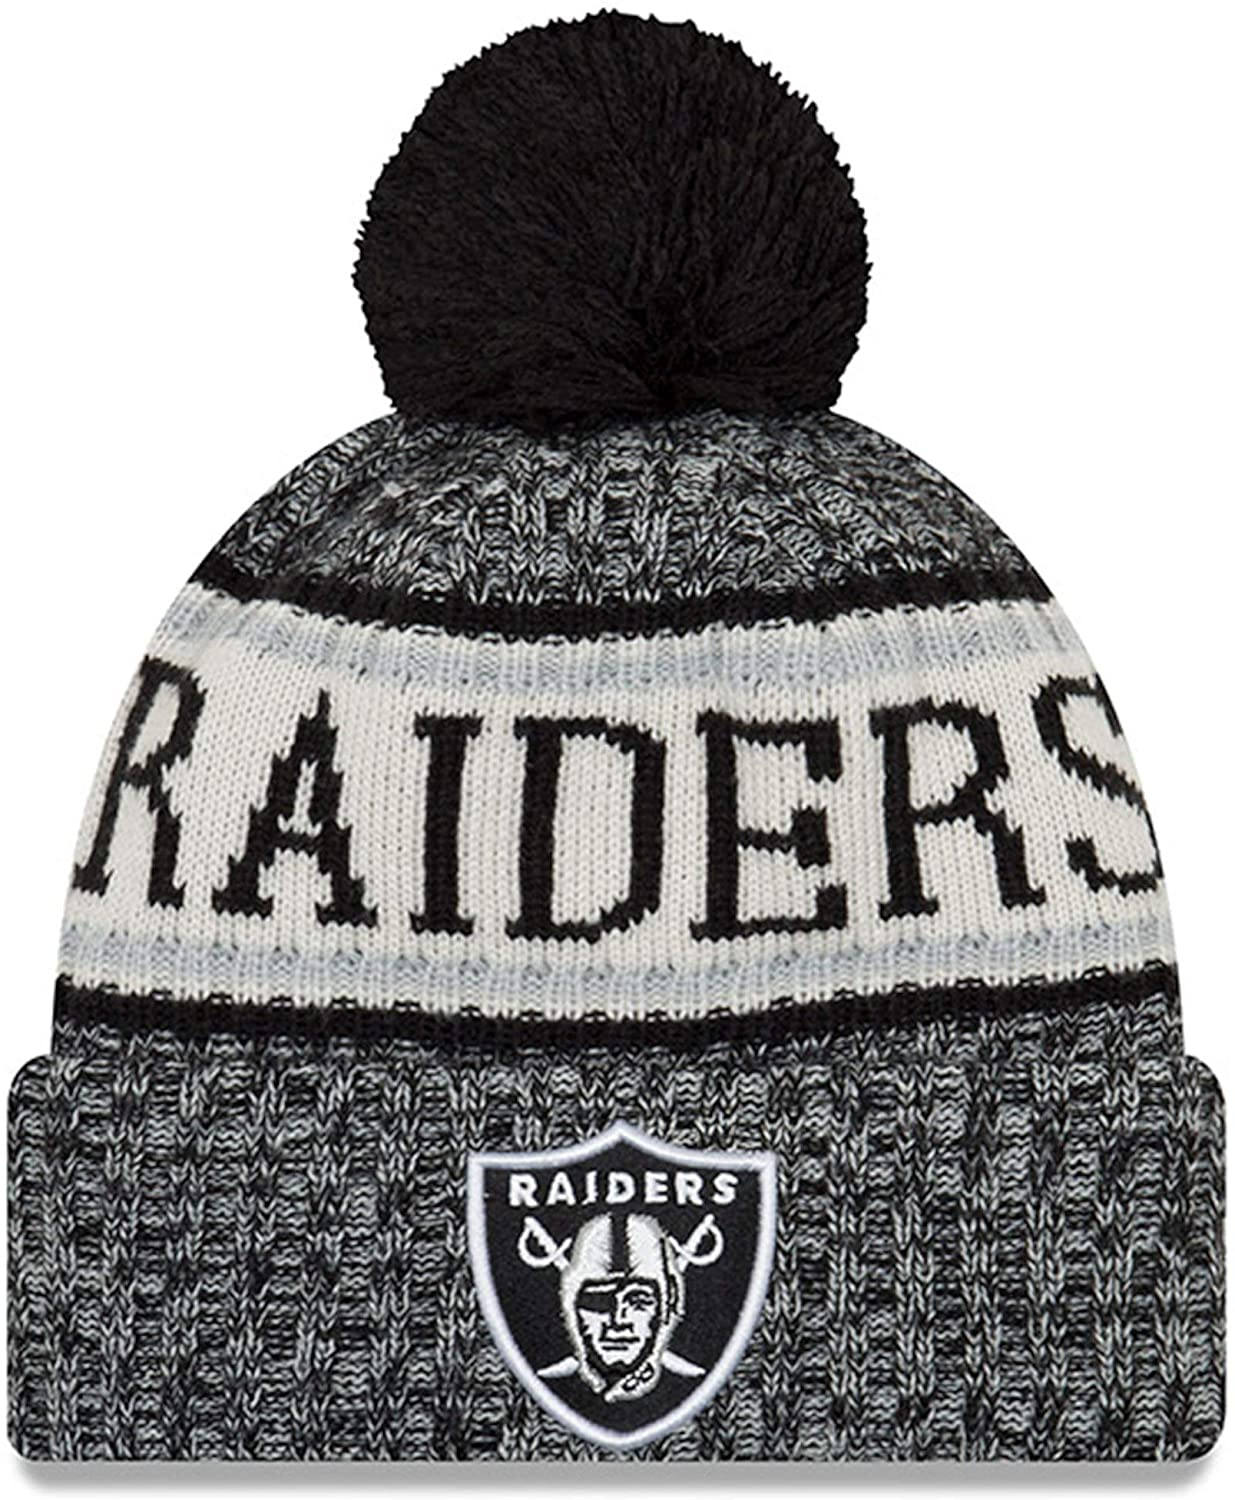 New Era Youth Raiders Sport Knit NFL Beanie Black, Jr./ Youth